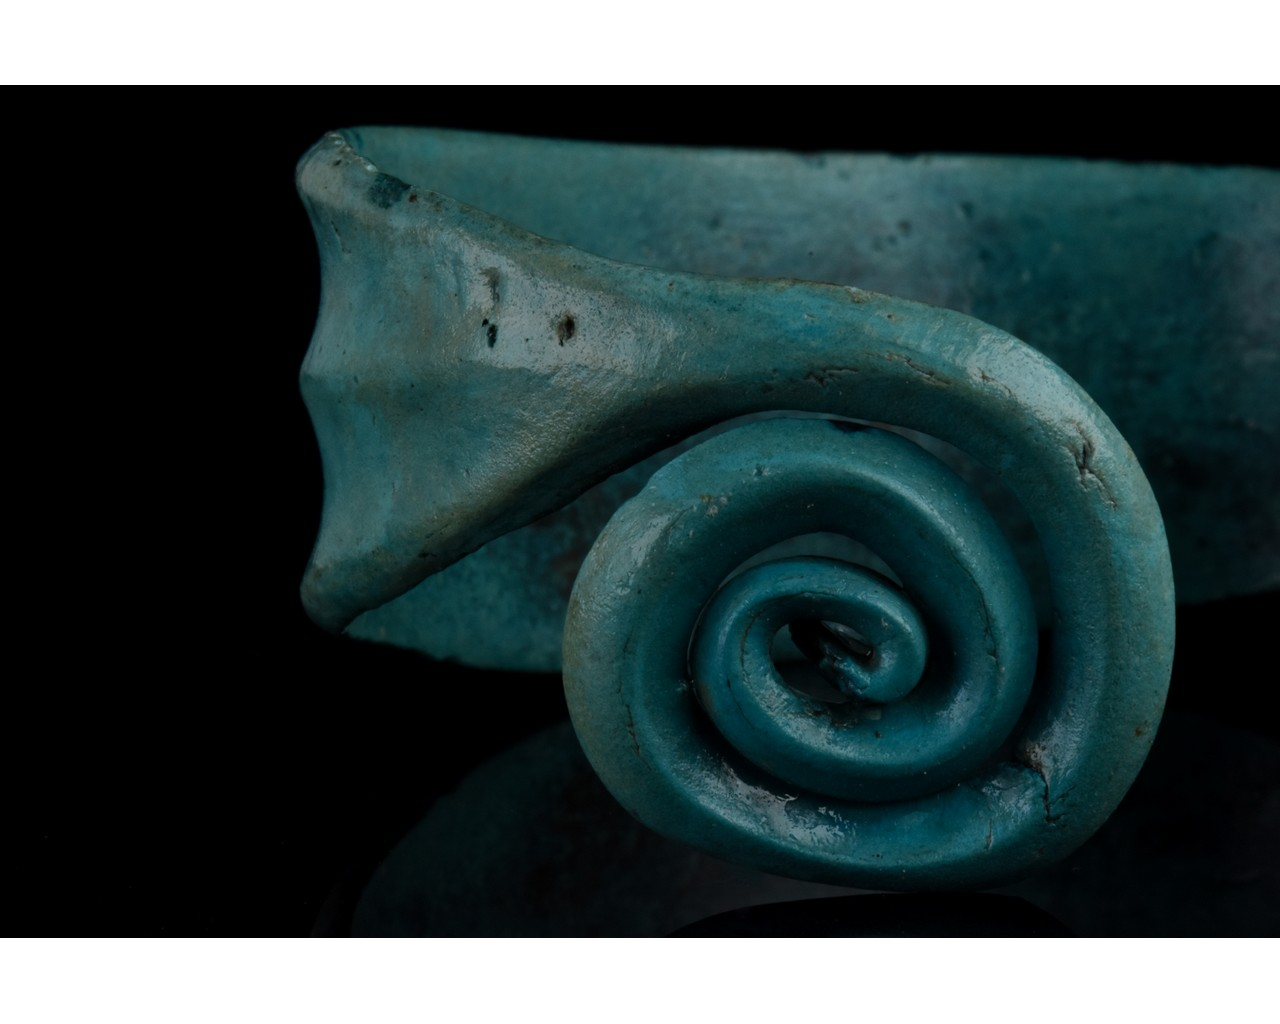 BRONZE AGE COILED BRACELET - Image 5 of 7